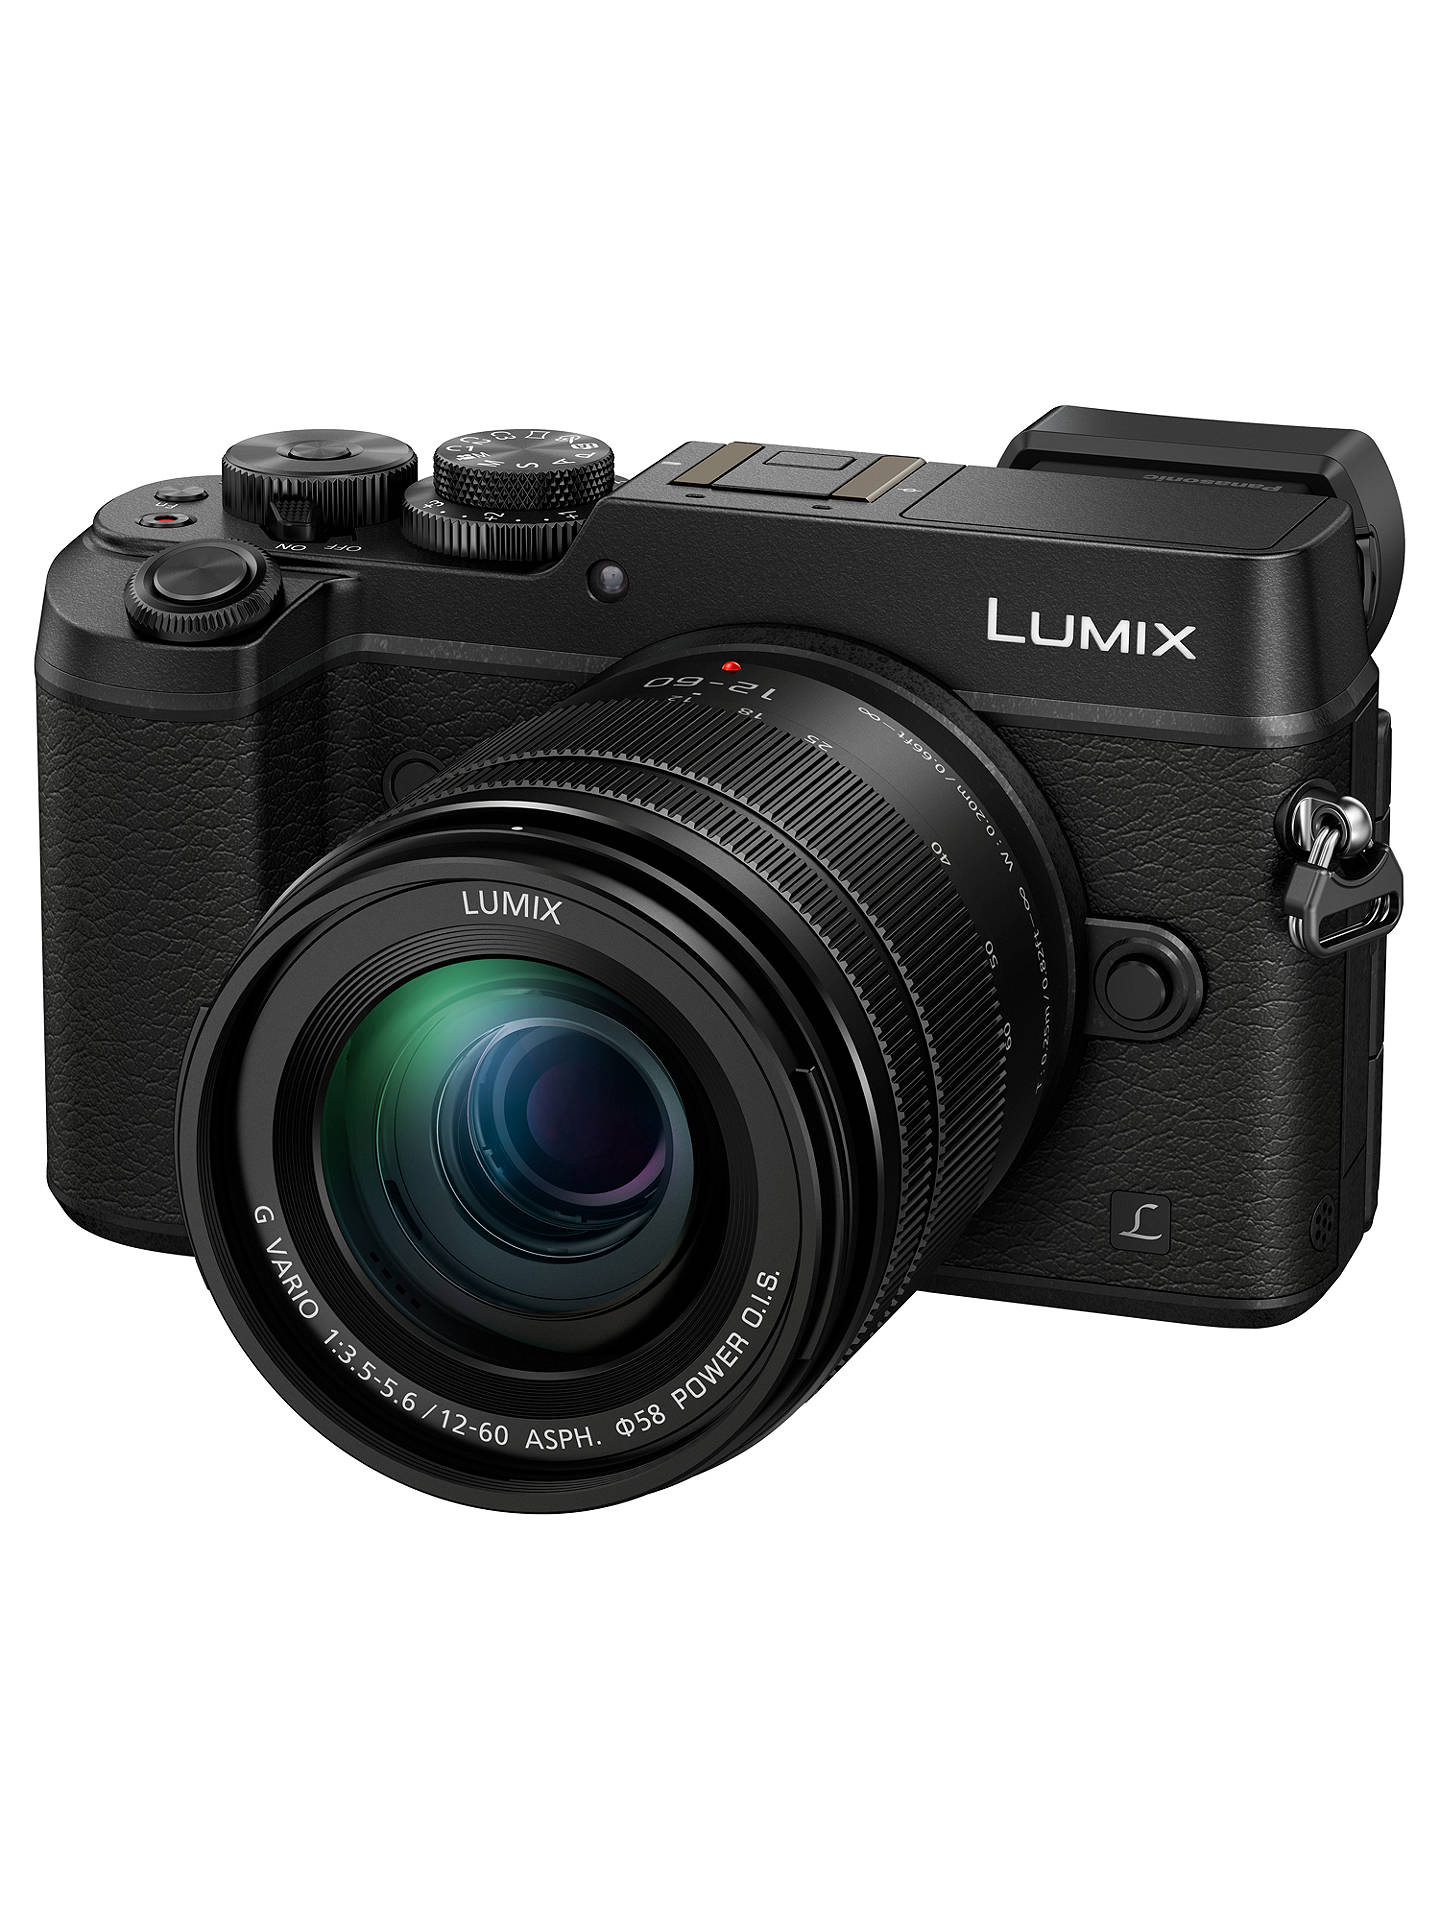 Panasonic Lumix DMC GX8 Compact System Camera With 12 60mm Lens 5x